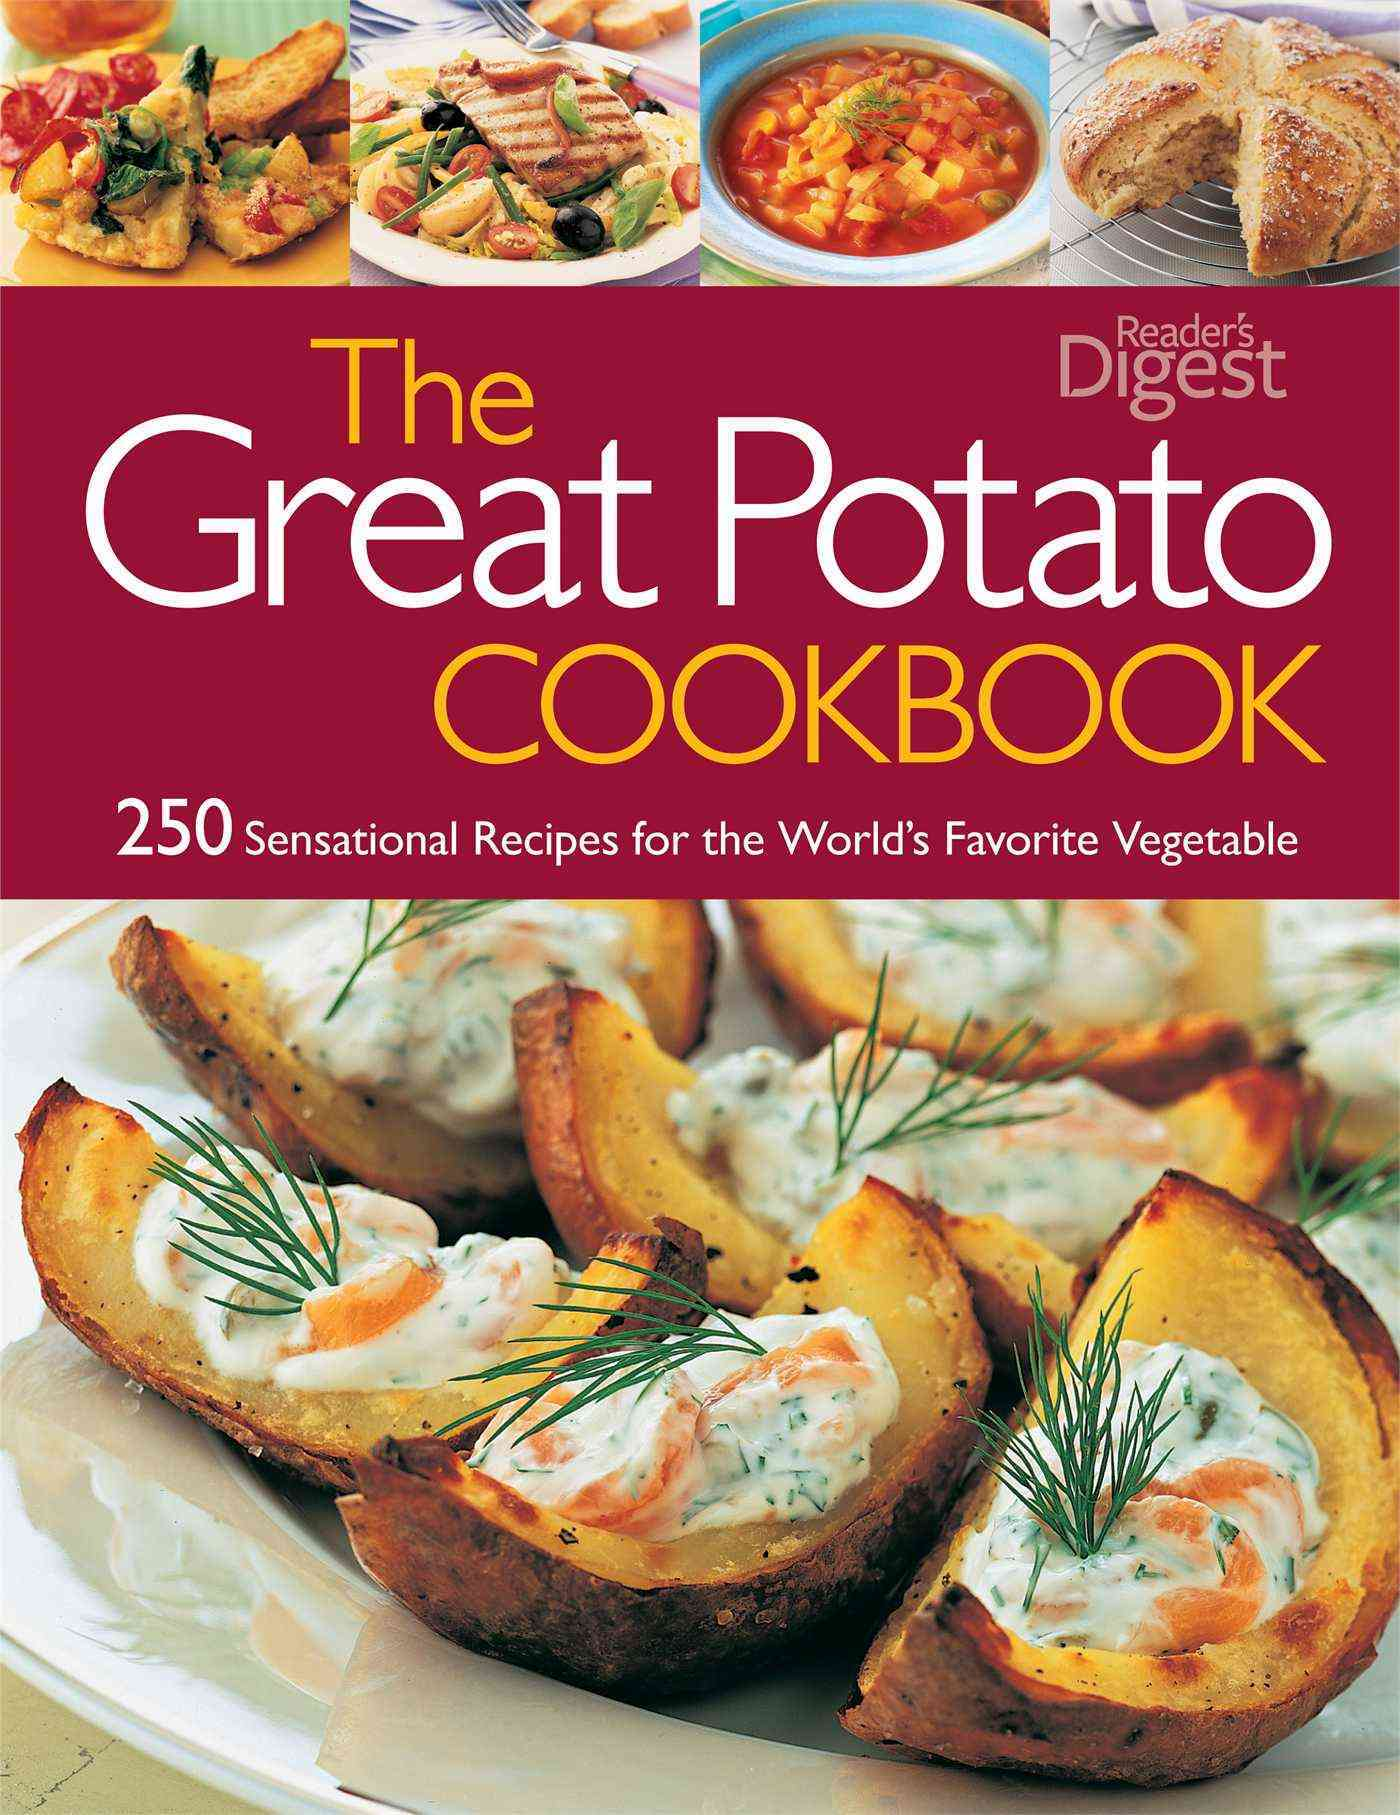 The Great Potato Cookbook: 250 Sensational Recipes for the World's Favorite Vegetable (Paperback)